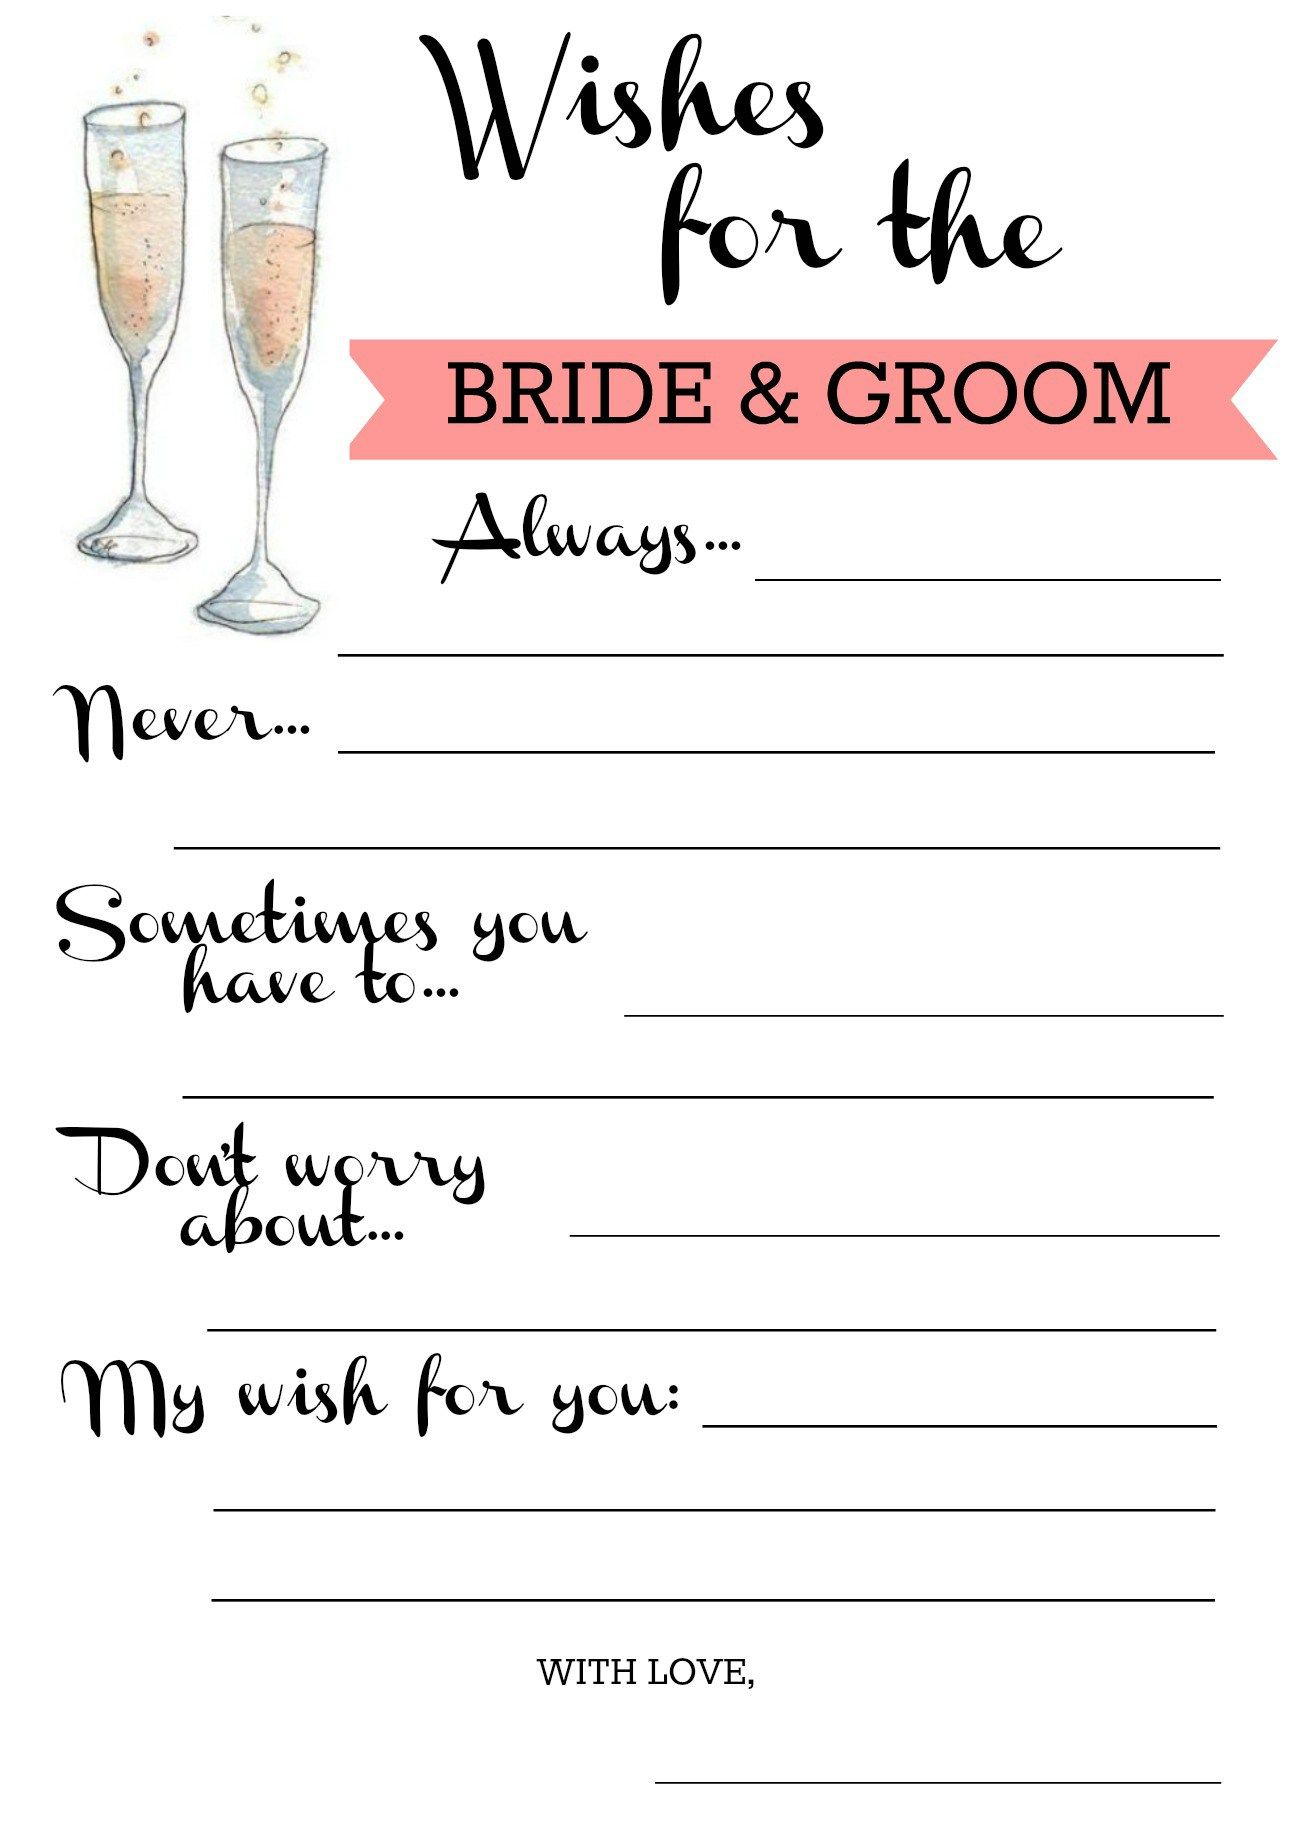 wishes for bride groom free printable